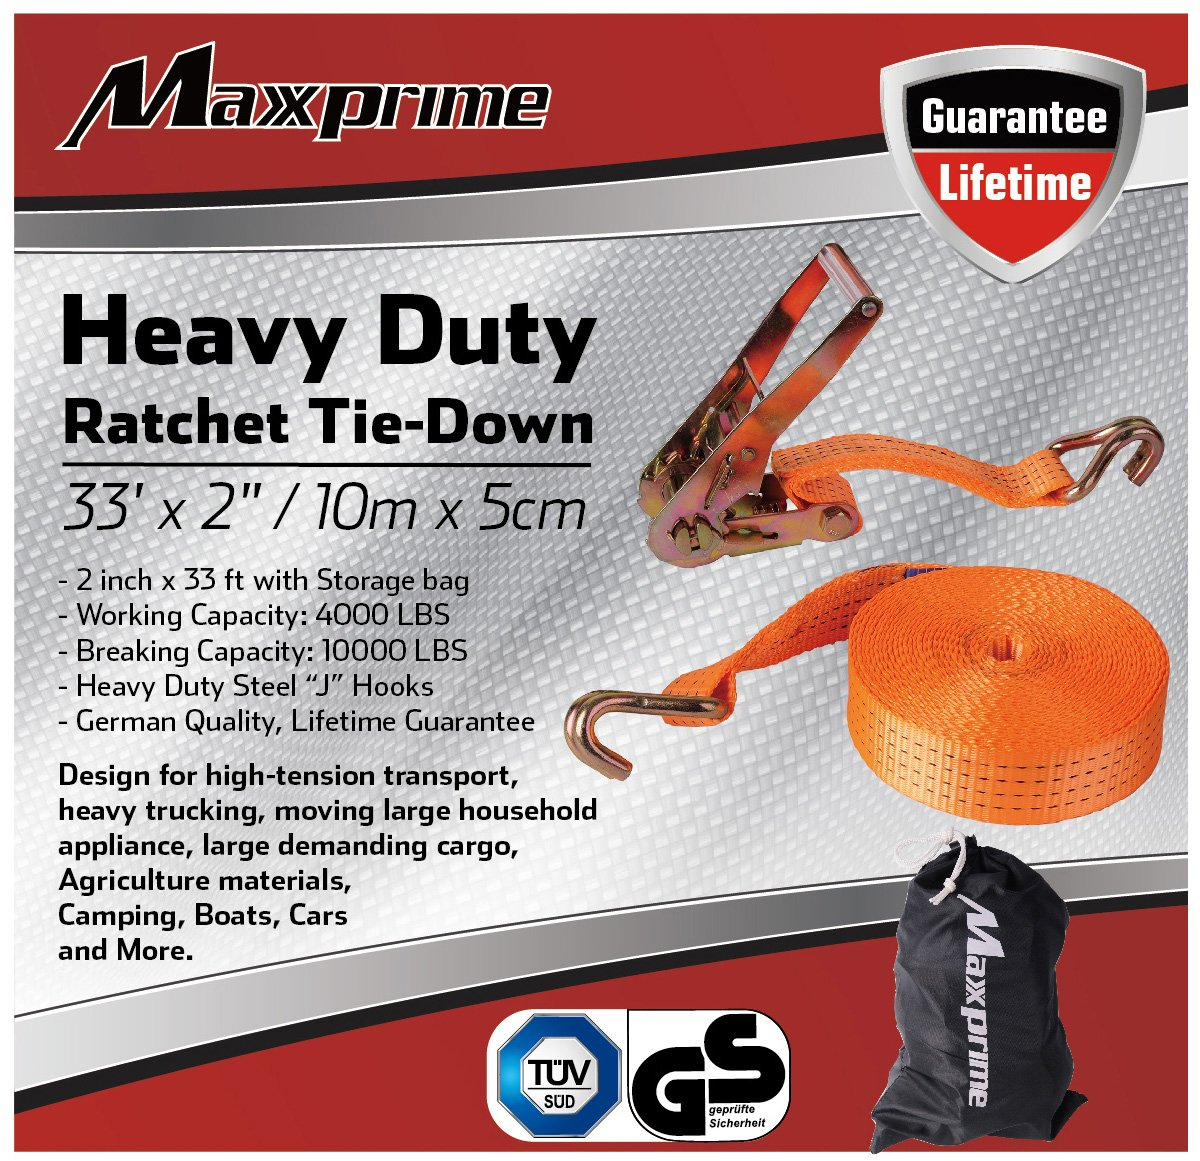 """Premium Ratchet Tie Down, Maxxprime 33' x 2"""" 10, 000 lbs Rated Capacity Tie-Down Ratcheting Cargo Truck Straps with Double J-Hooks - German Quality by MAXXPRIME (Image #3)"""